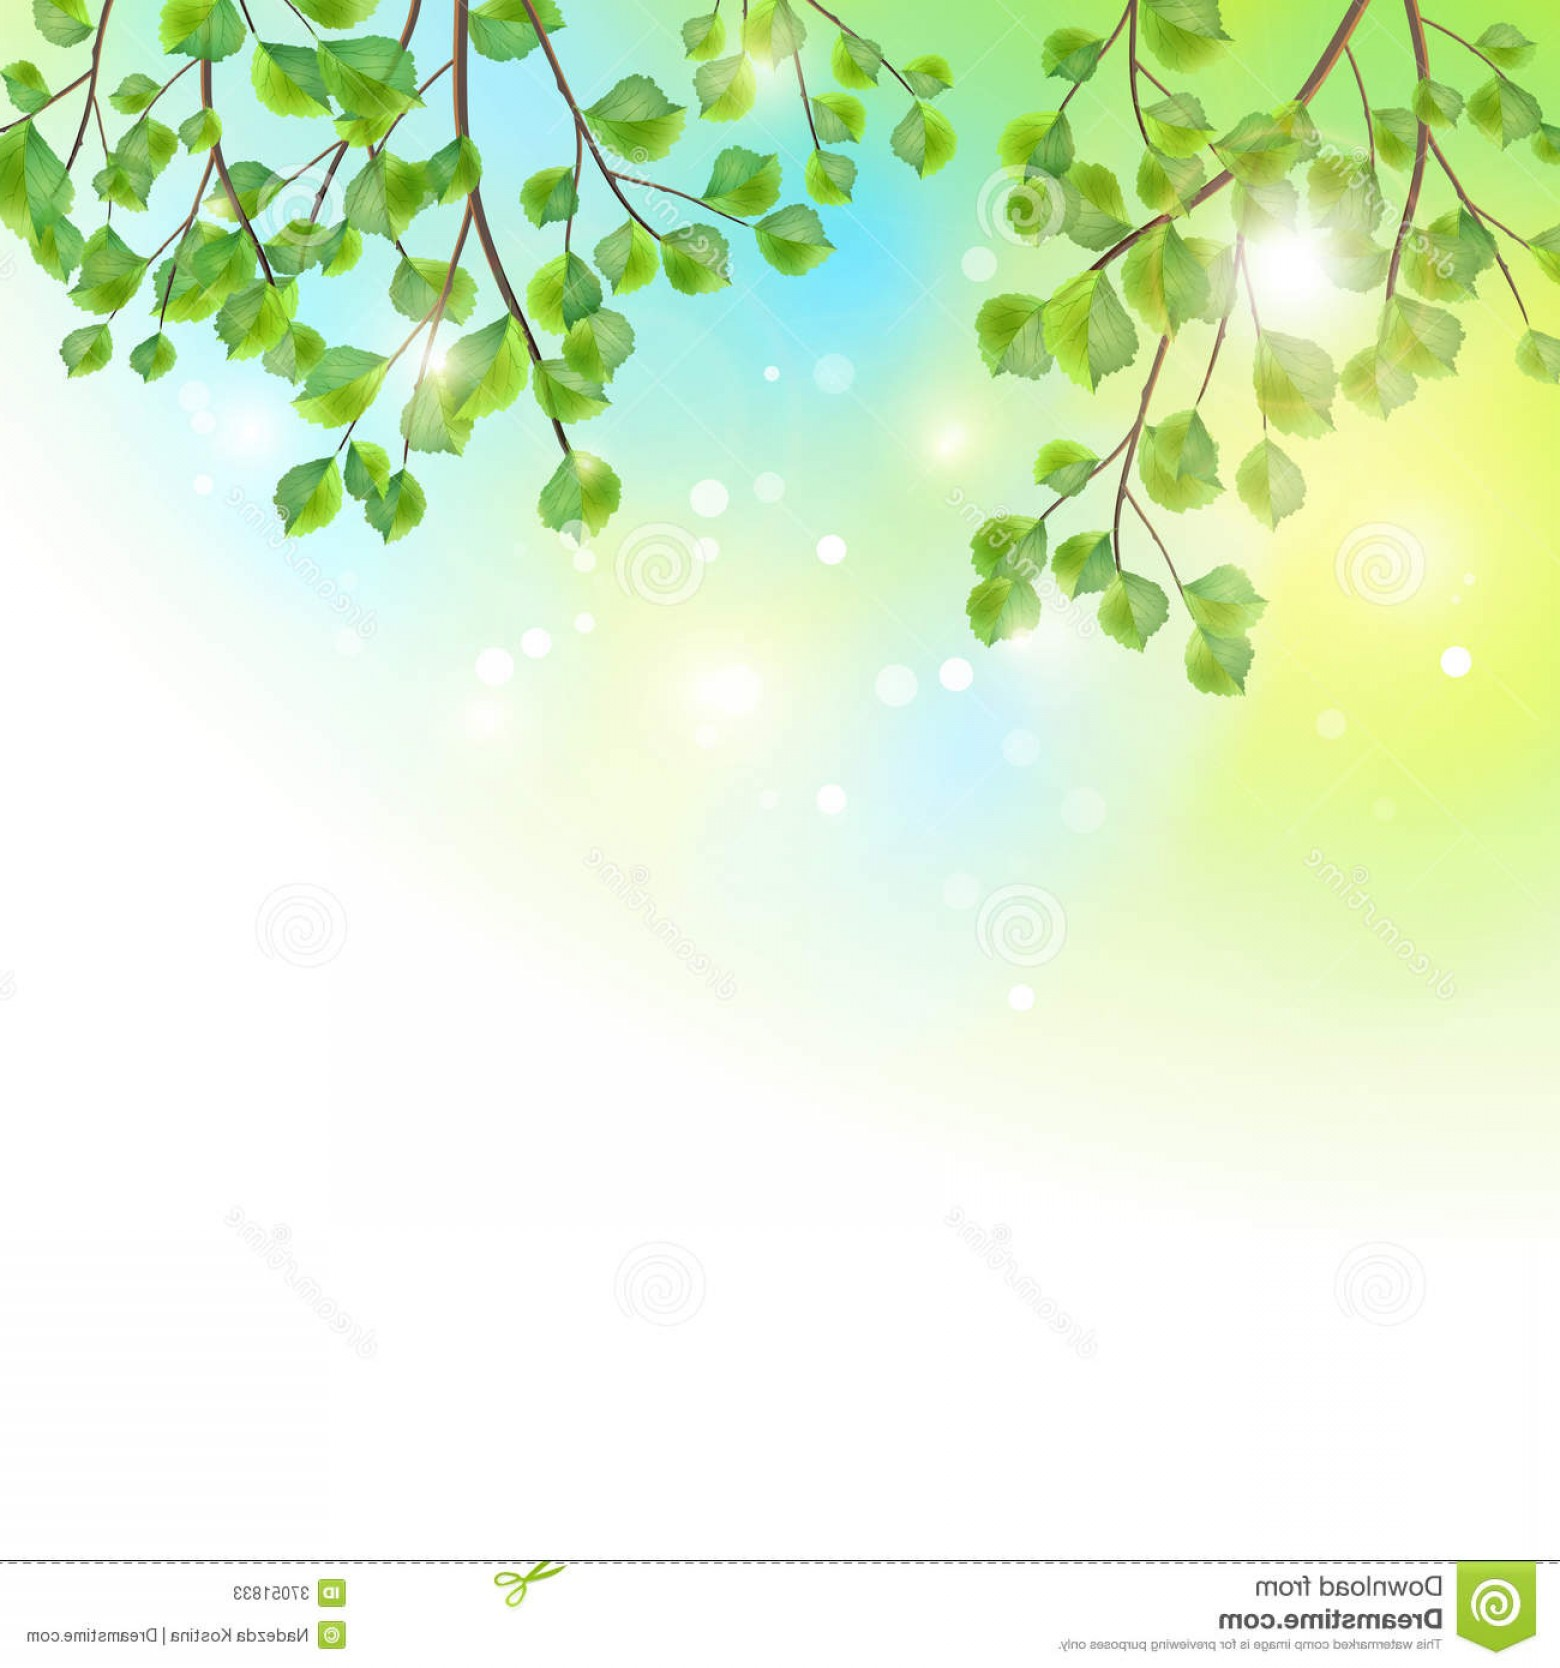 Tree Branch Vector Background: Stock Photos Green Leaves Tree Branches Vector Background Summer Birch Border Foliage Colorful Sunny Sky Backdrop Image